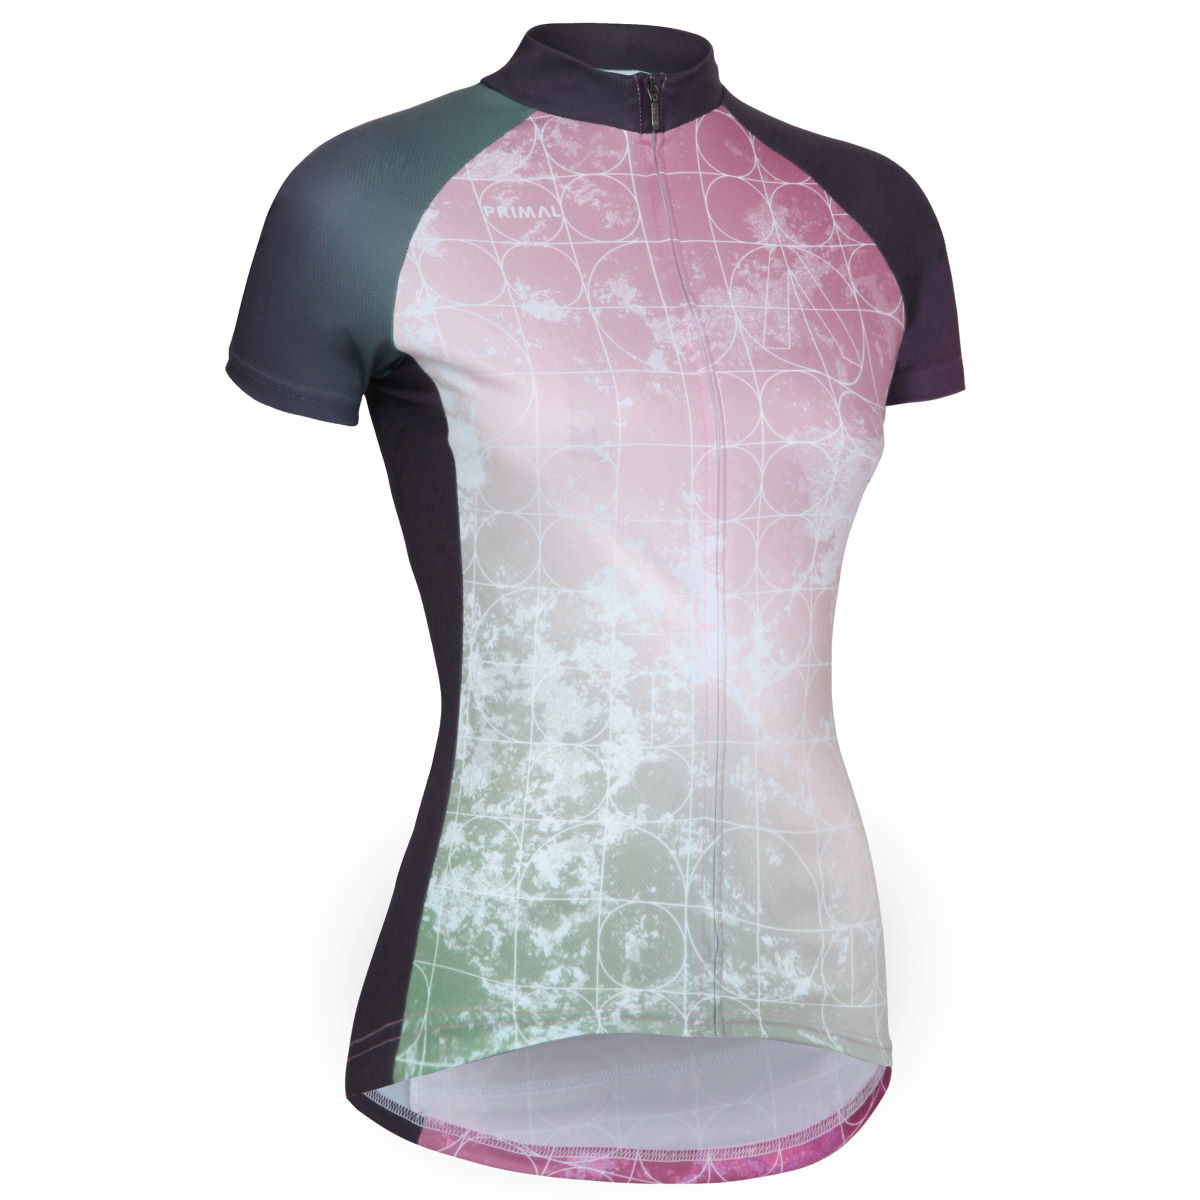 Maillot Femme Primal Nebula (coupe sportive) - L Multi Coloured